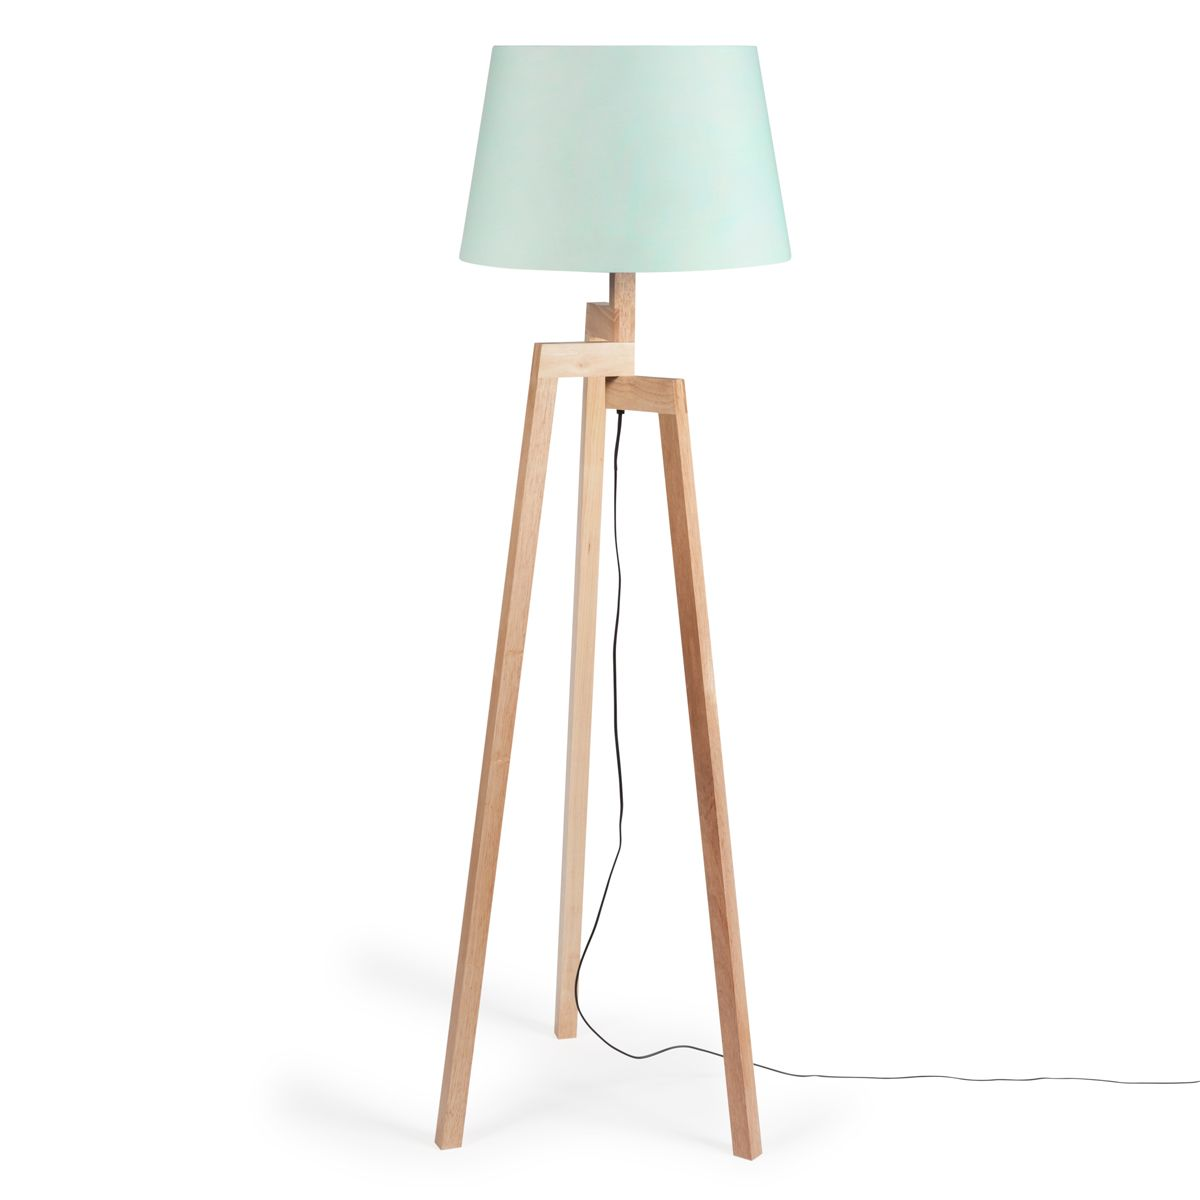 lampadaire tr pied pastel en bois h 150 cm chez maisons du monde 125 90 euros home. Black Bedroom Furniture Sets. Home Design Ideas